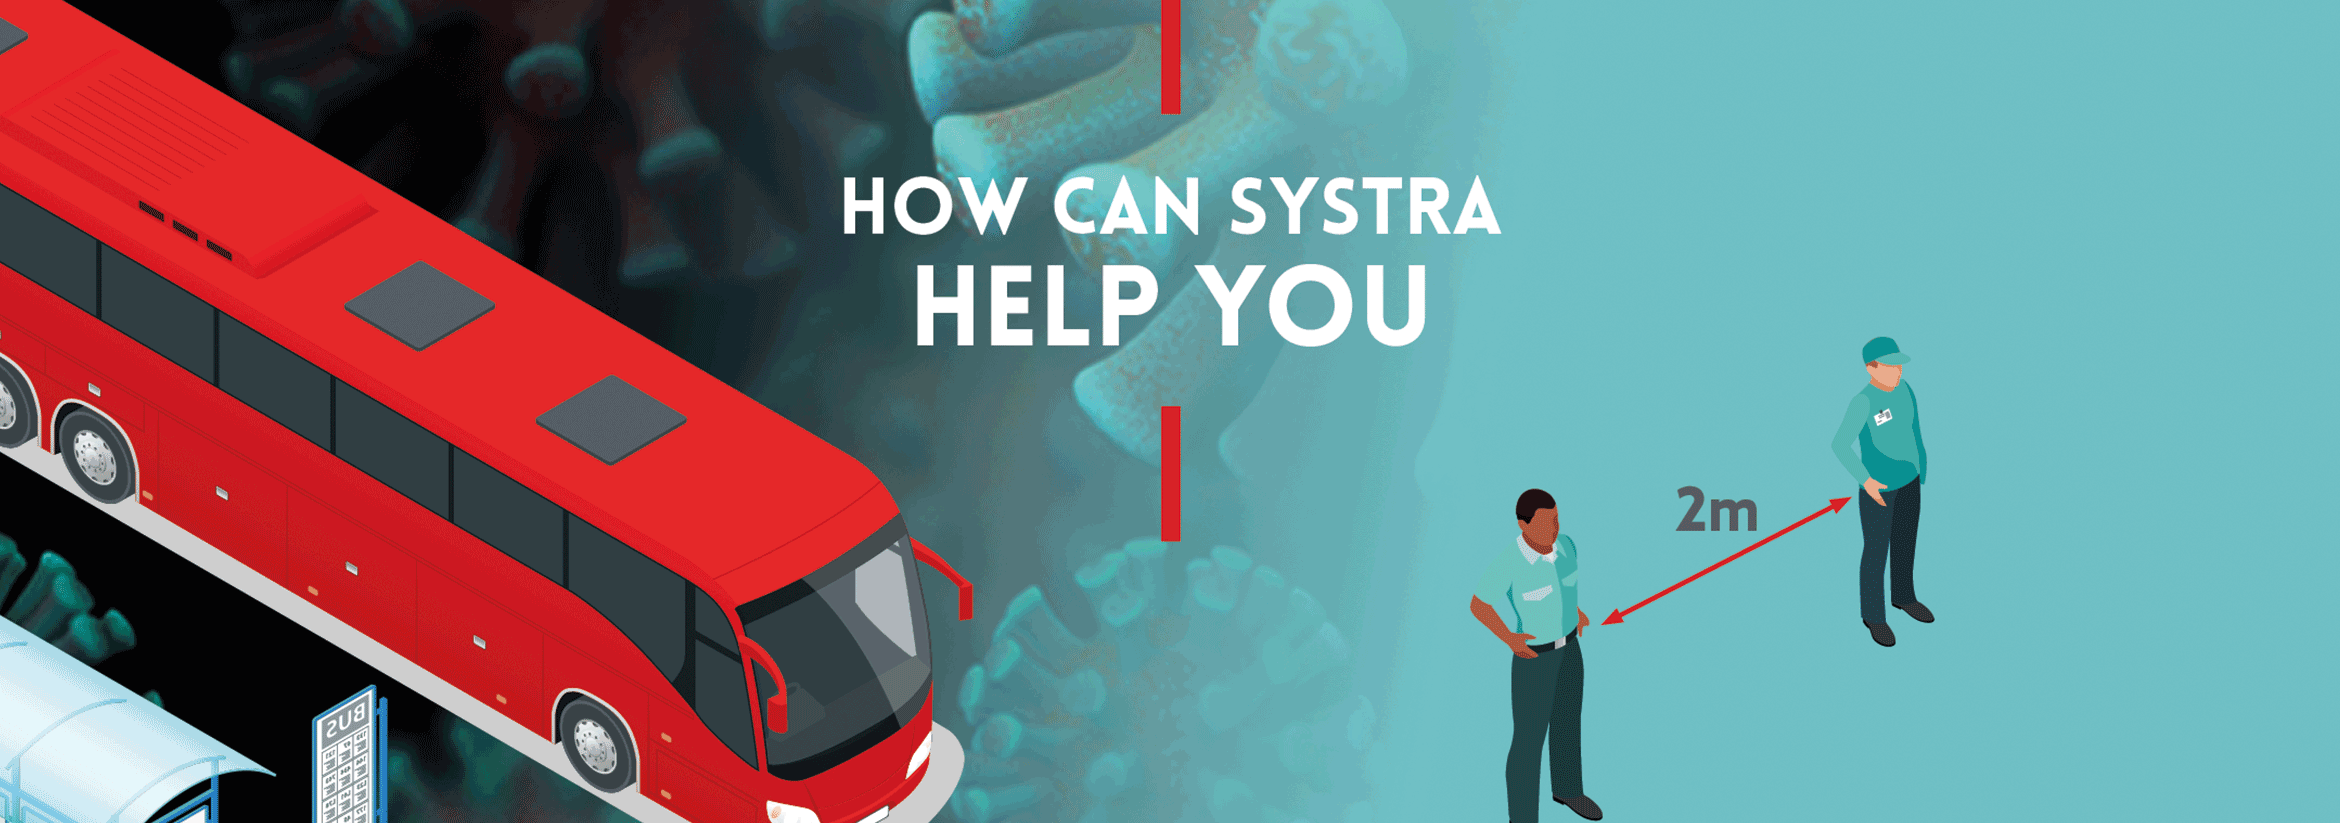 How can SYSTRA help